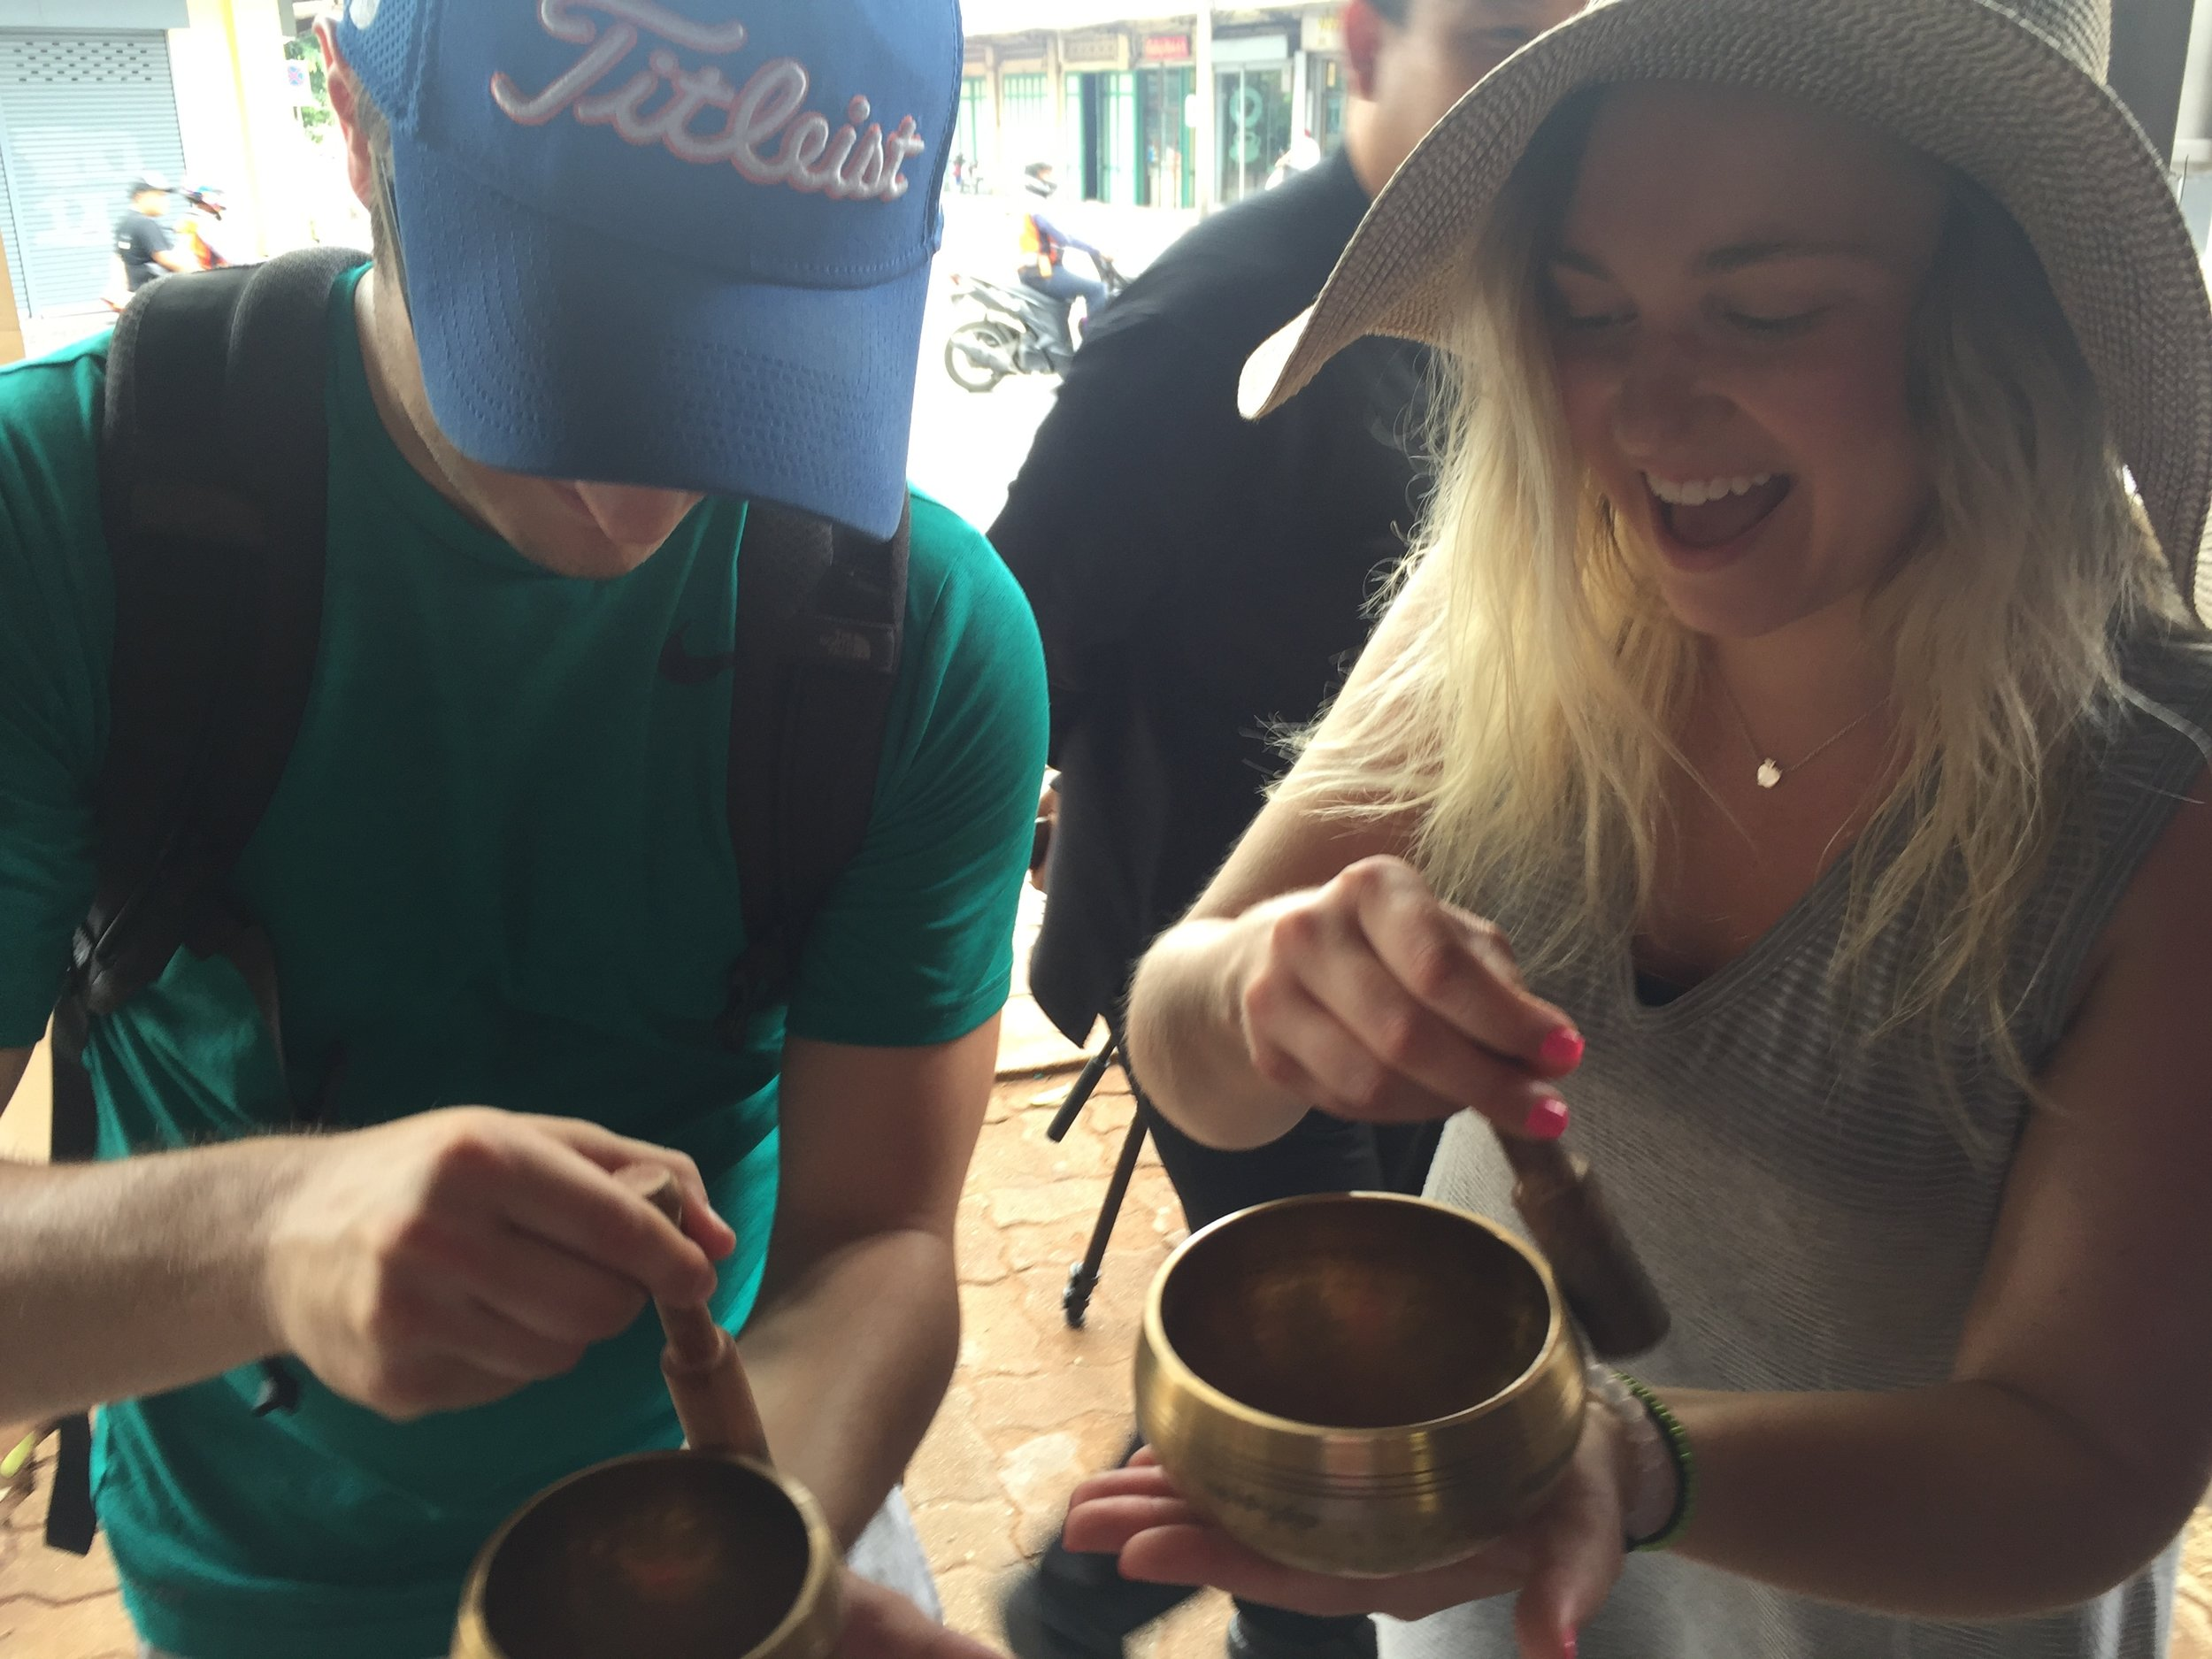 Gabbi and Charlie making music with the monk's bowls